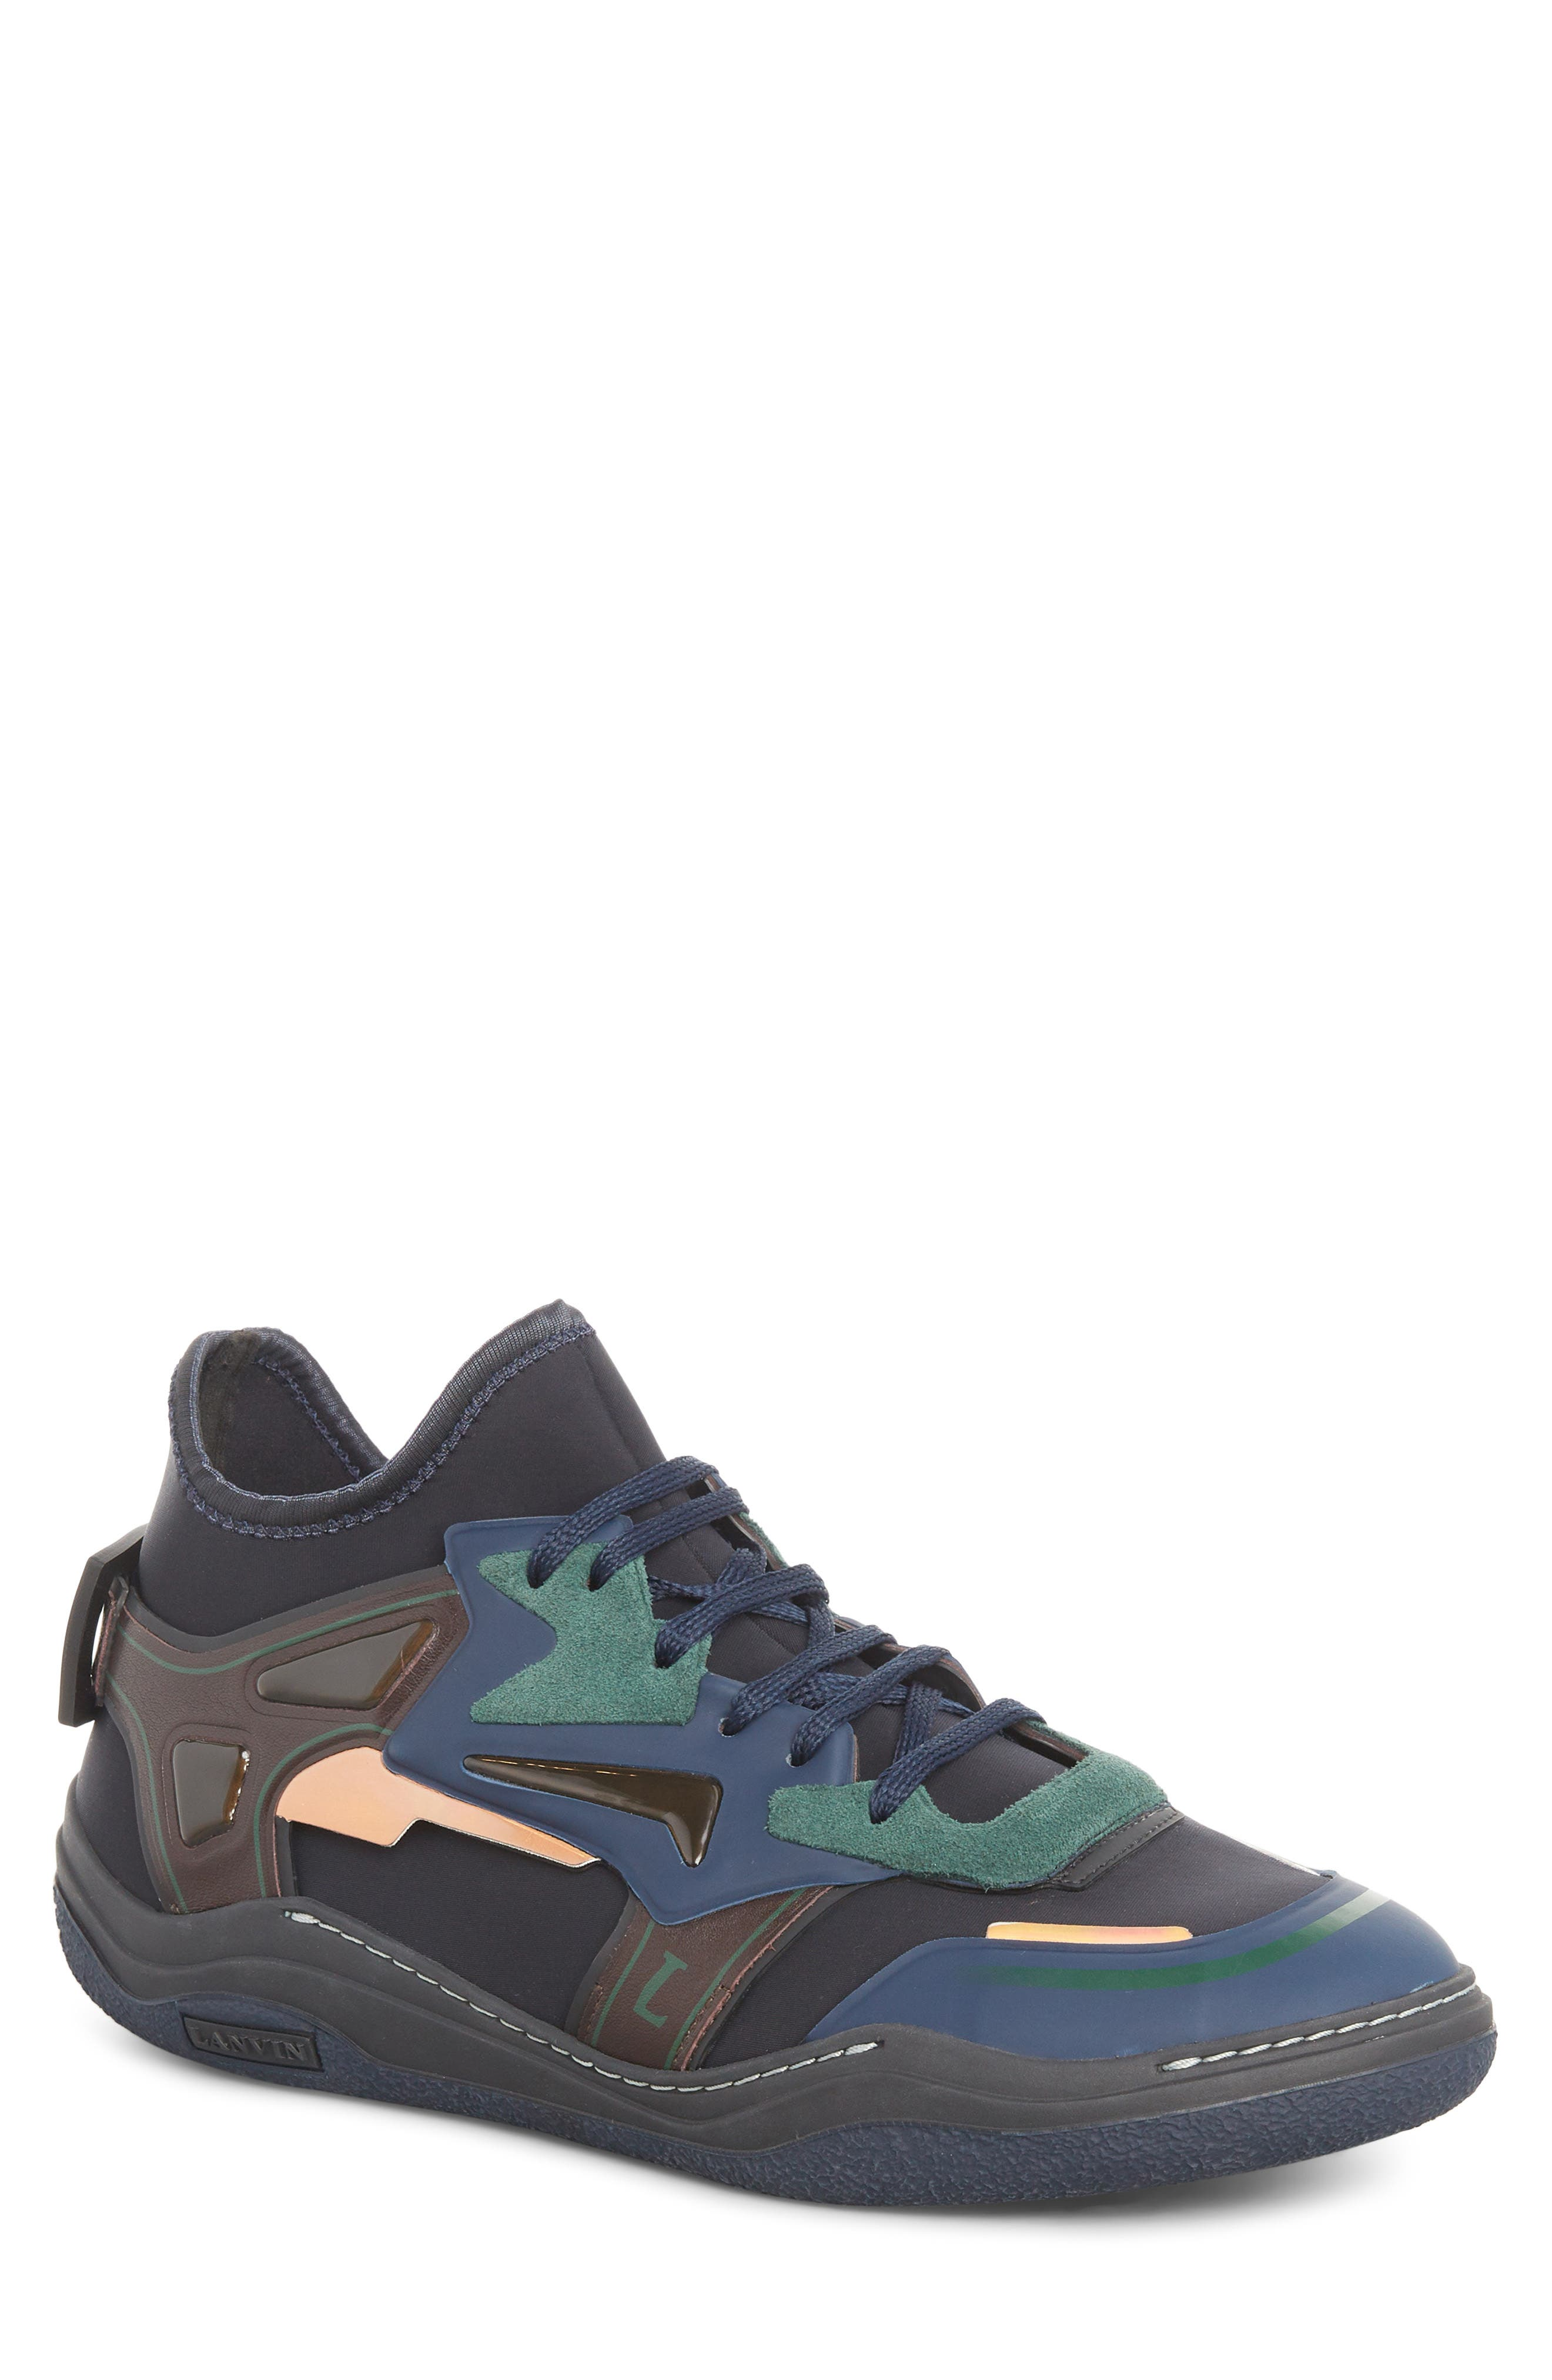 High Frequency Sneaker,                             Main thumbnail 1, color,                             001